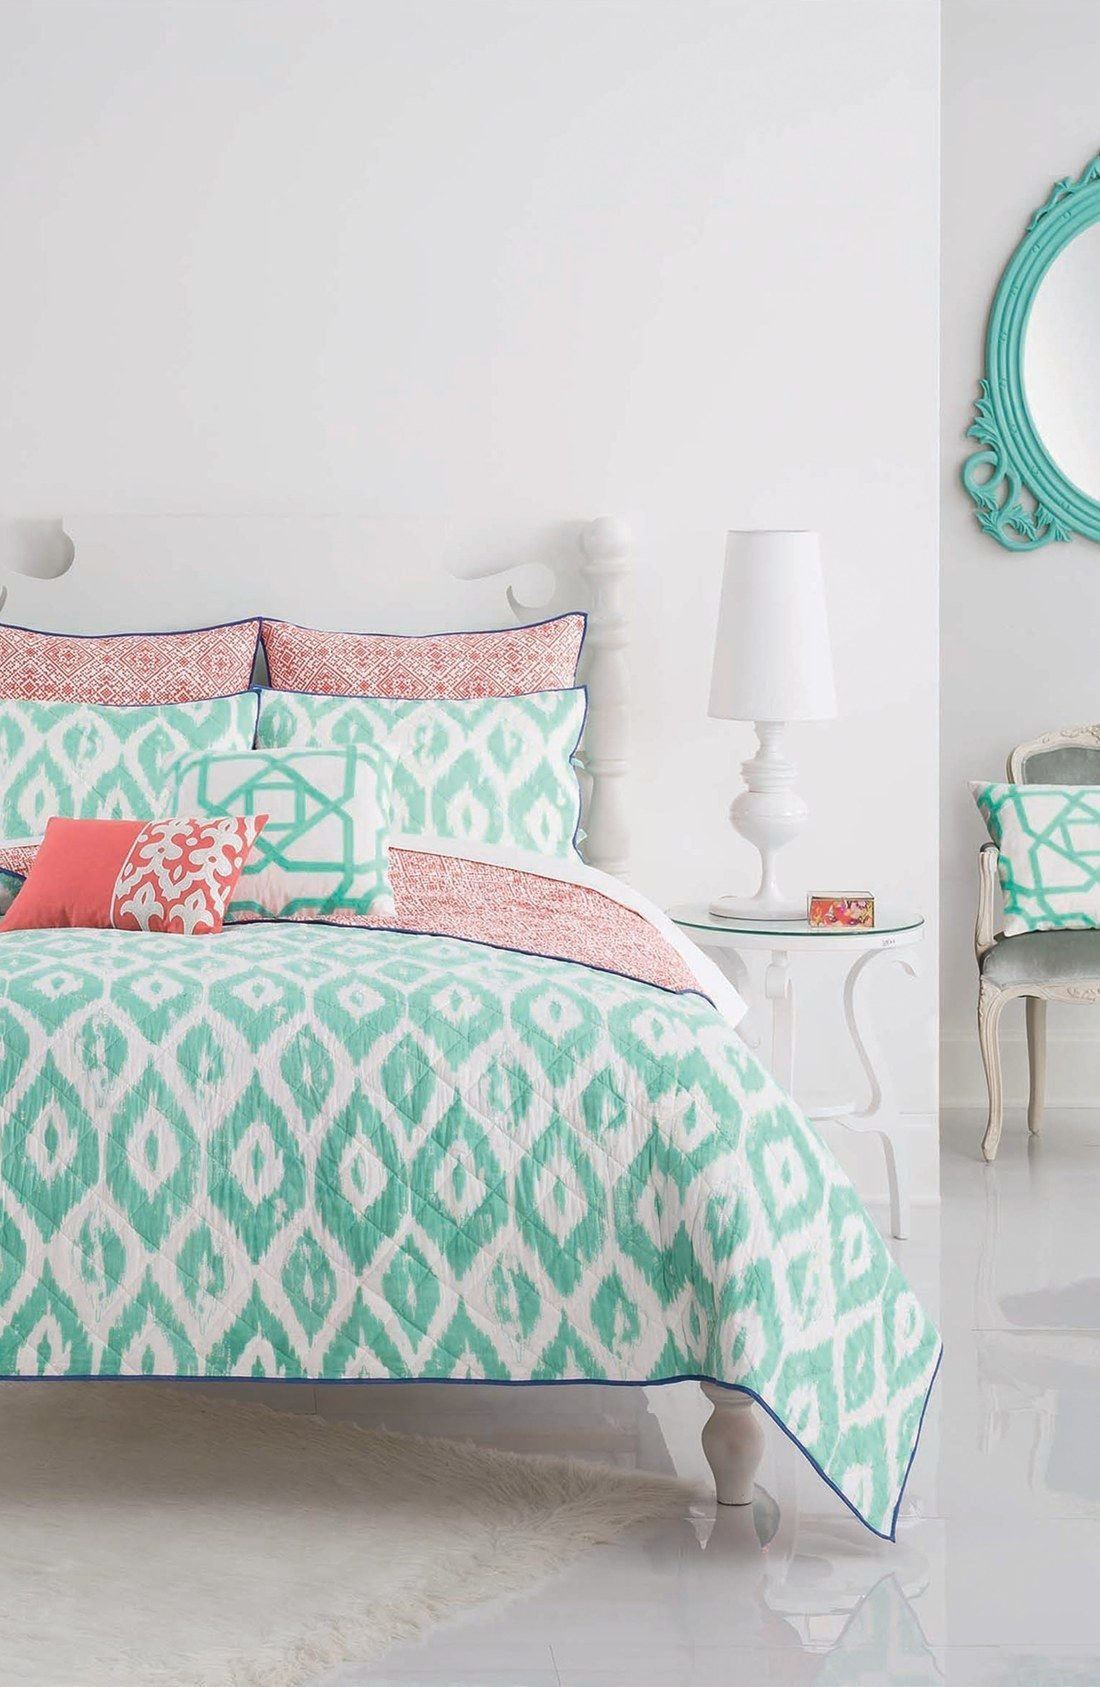 Best Loving The Turquoise And Coral Bedding Paired Together For A Bright And Fun Look In The Bedroom With Pictures